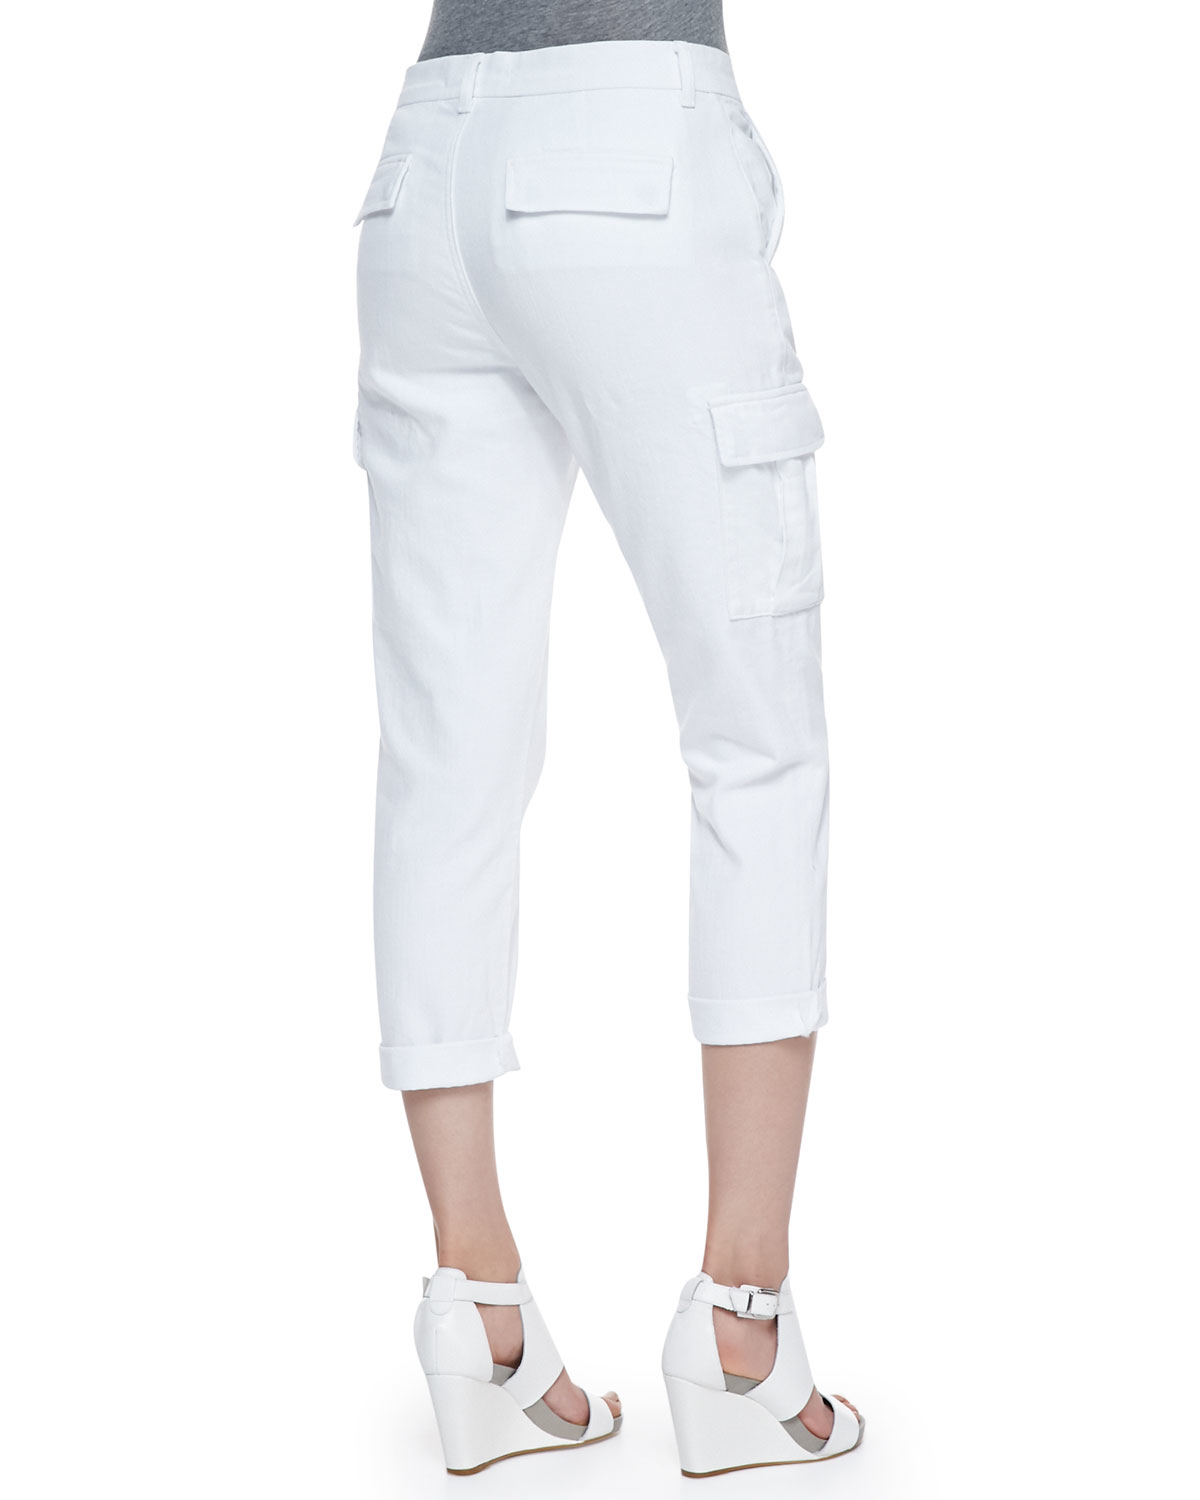 Perfect All White Cargo Pants - Pi Pants